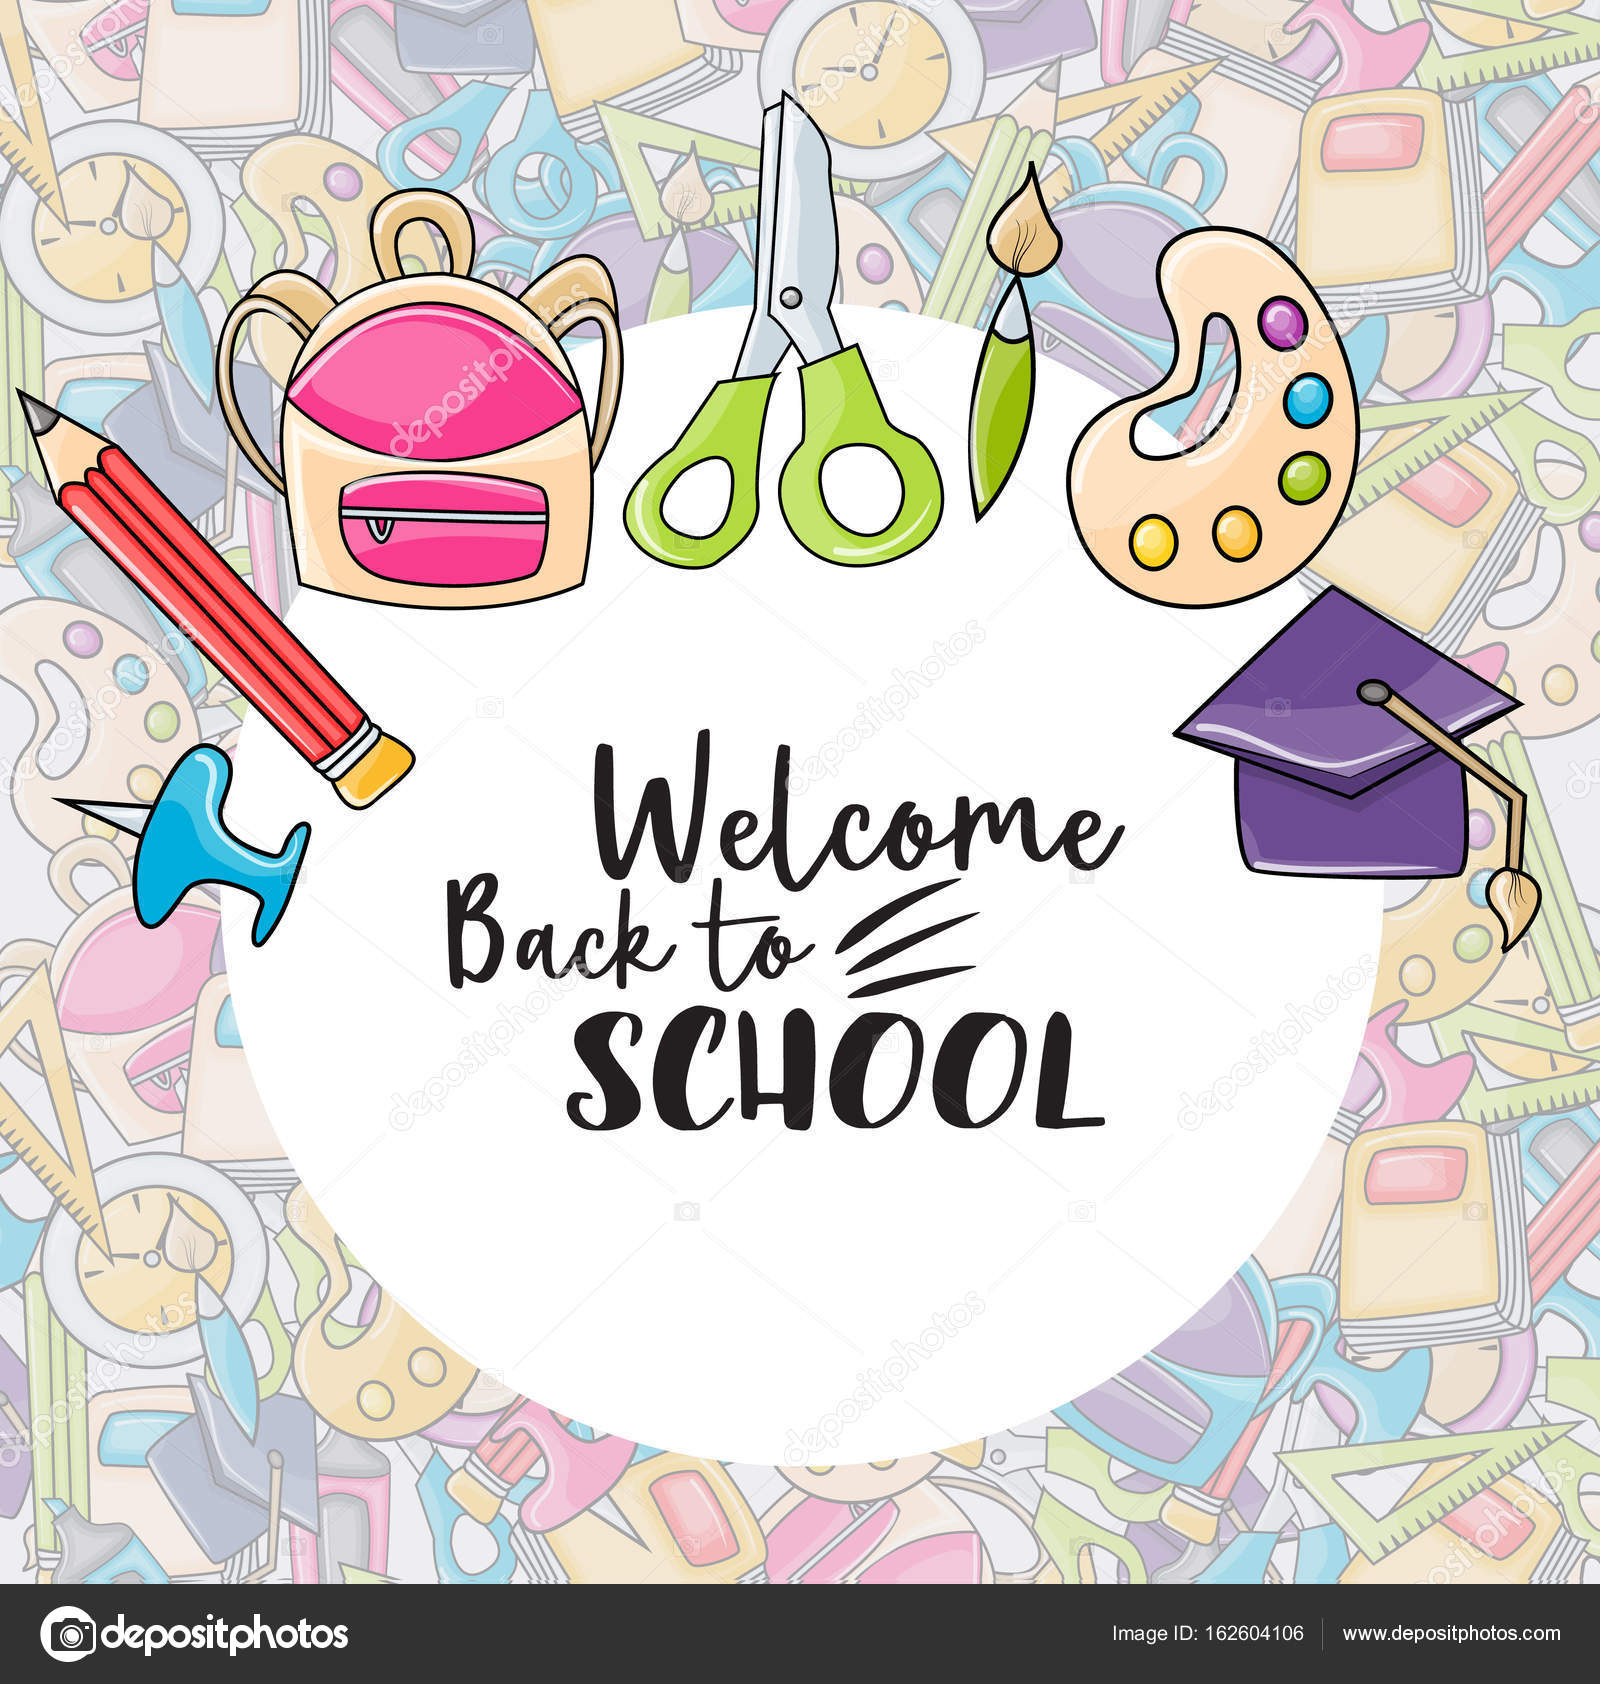 Welcome back to school doodle clip art stock vector milana88 welcome back to school doodle clip art greeting card cartoon vector illustration for flyer to banner typography script text vector by milana88 m4hsunfo